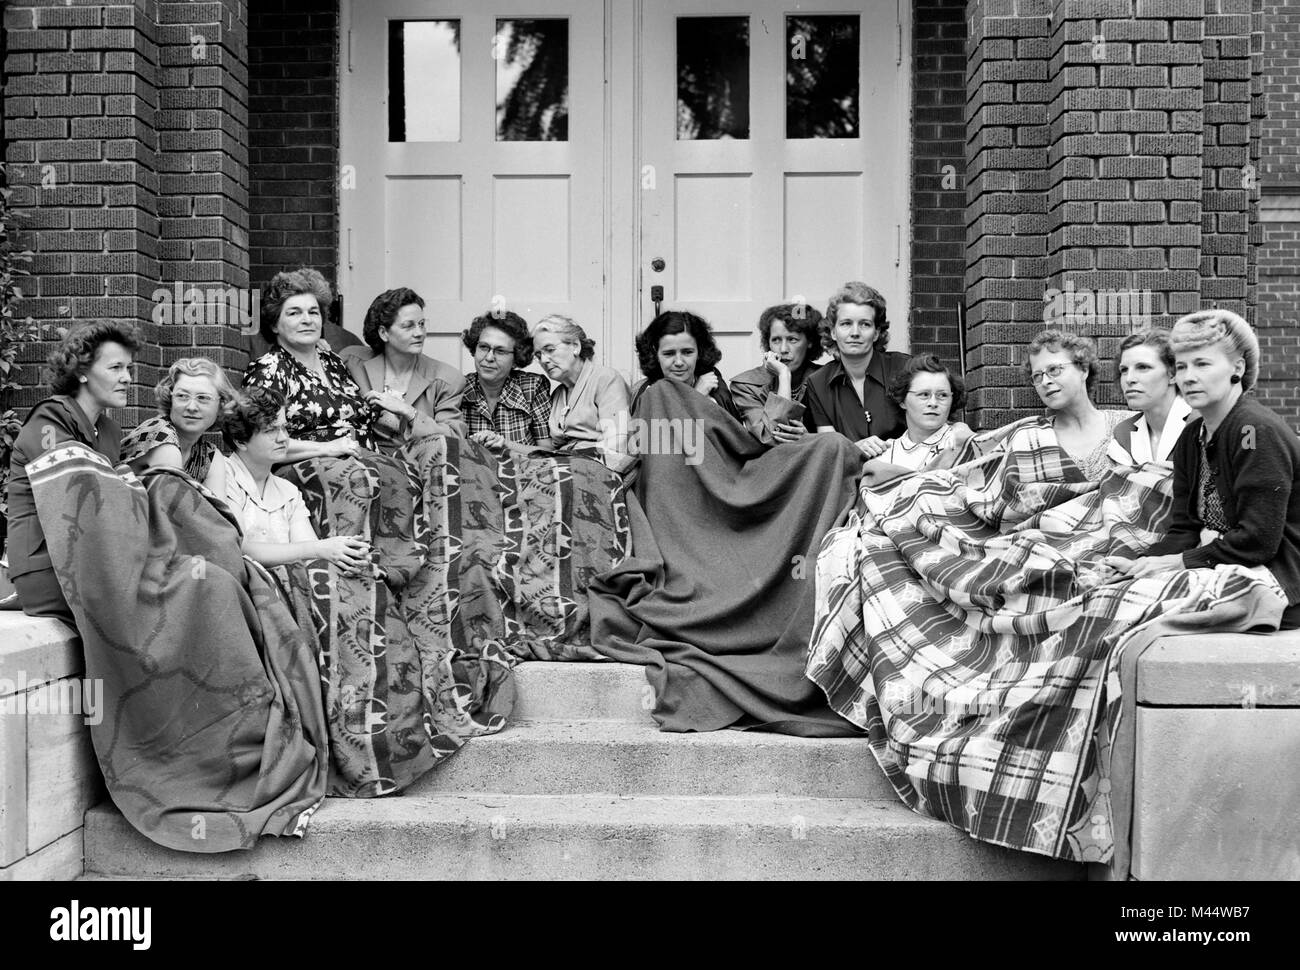 A group of Onward, Indiana women bundle up and block the entrance to their high school after local officials tried - Stock Image